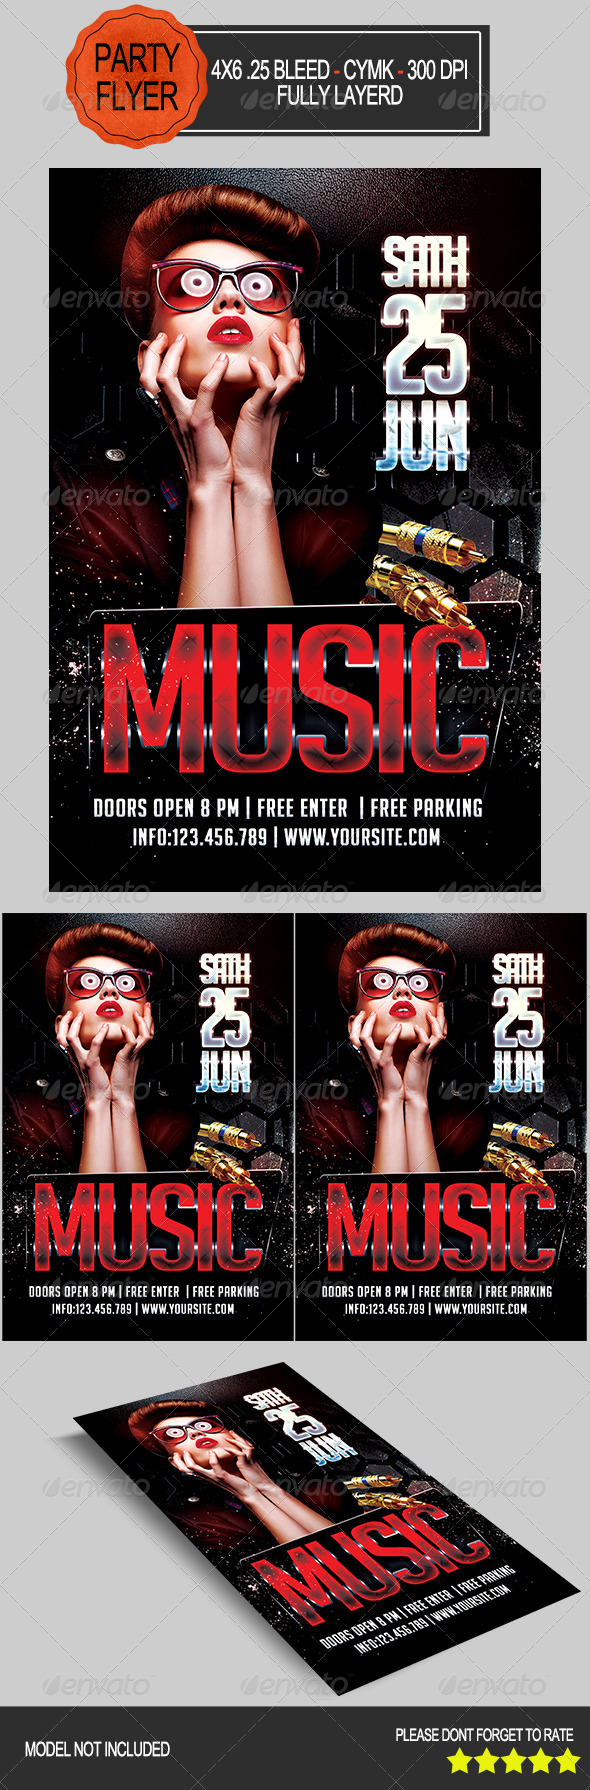 GraphicRiver Music Party Flyer 7890639